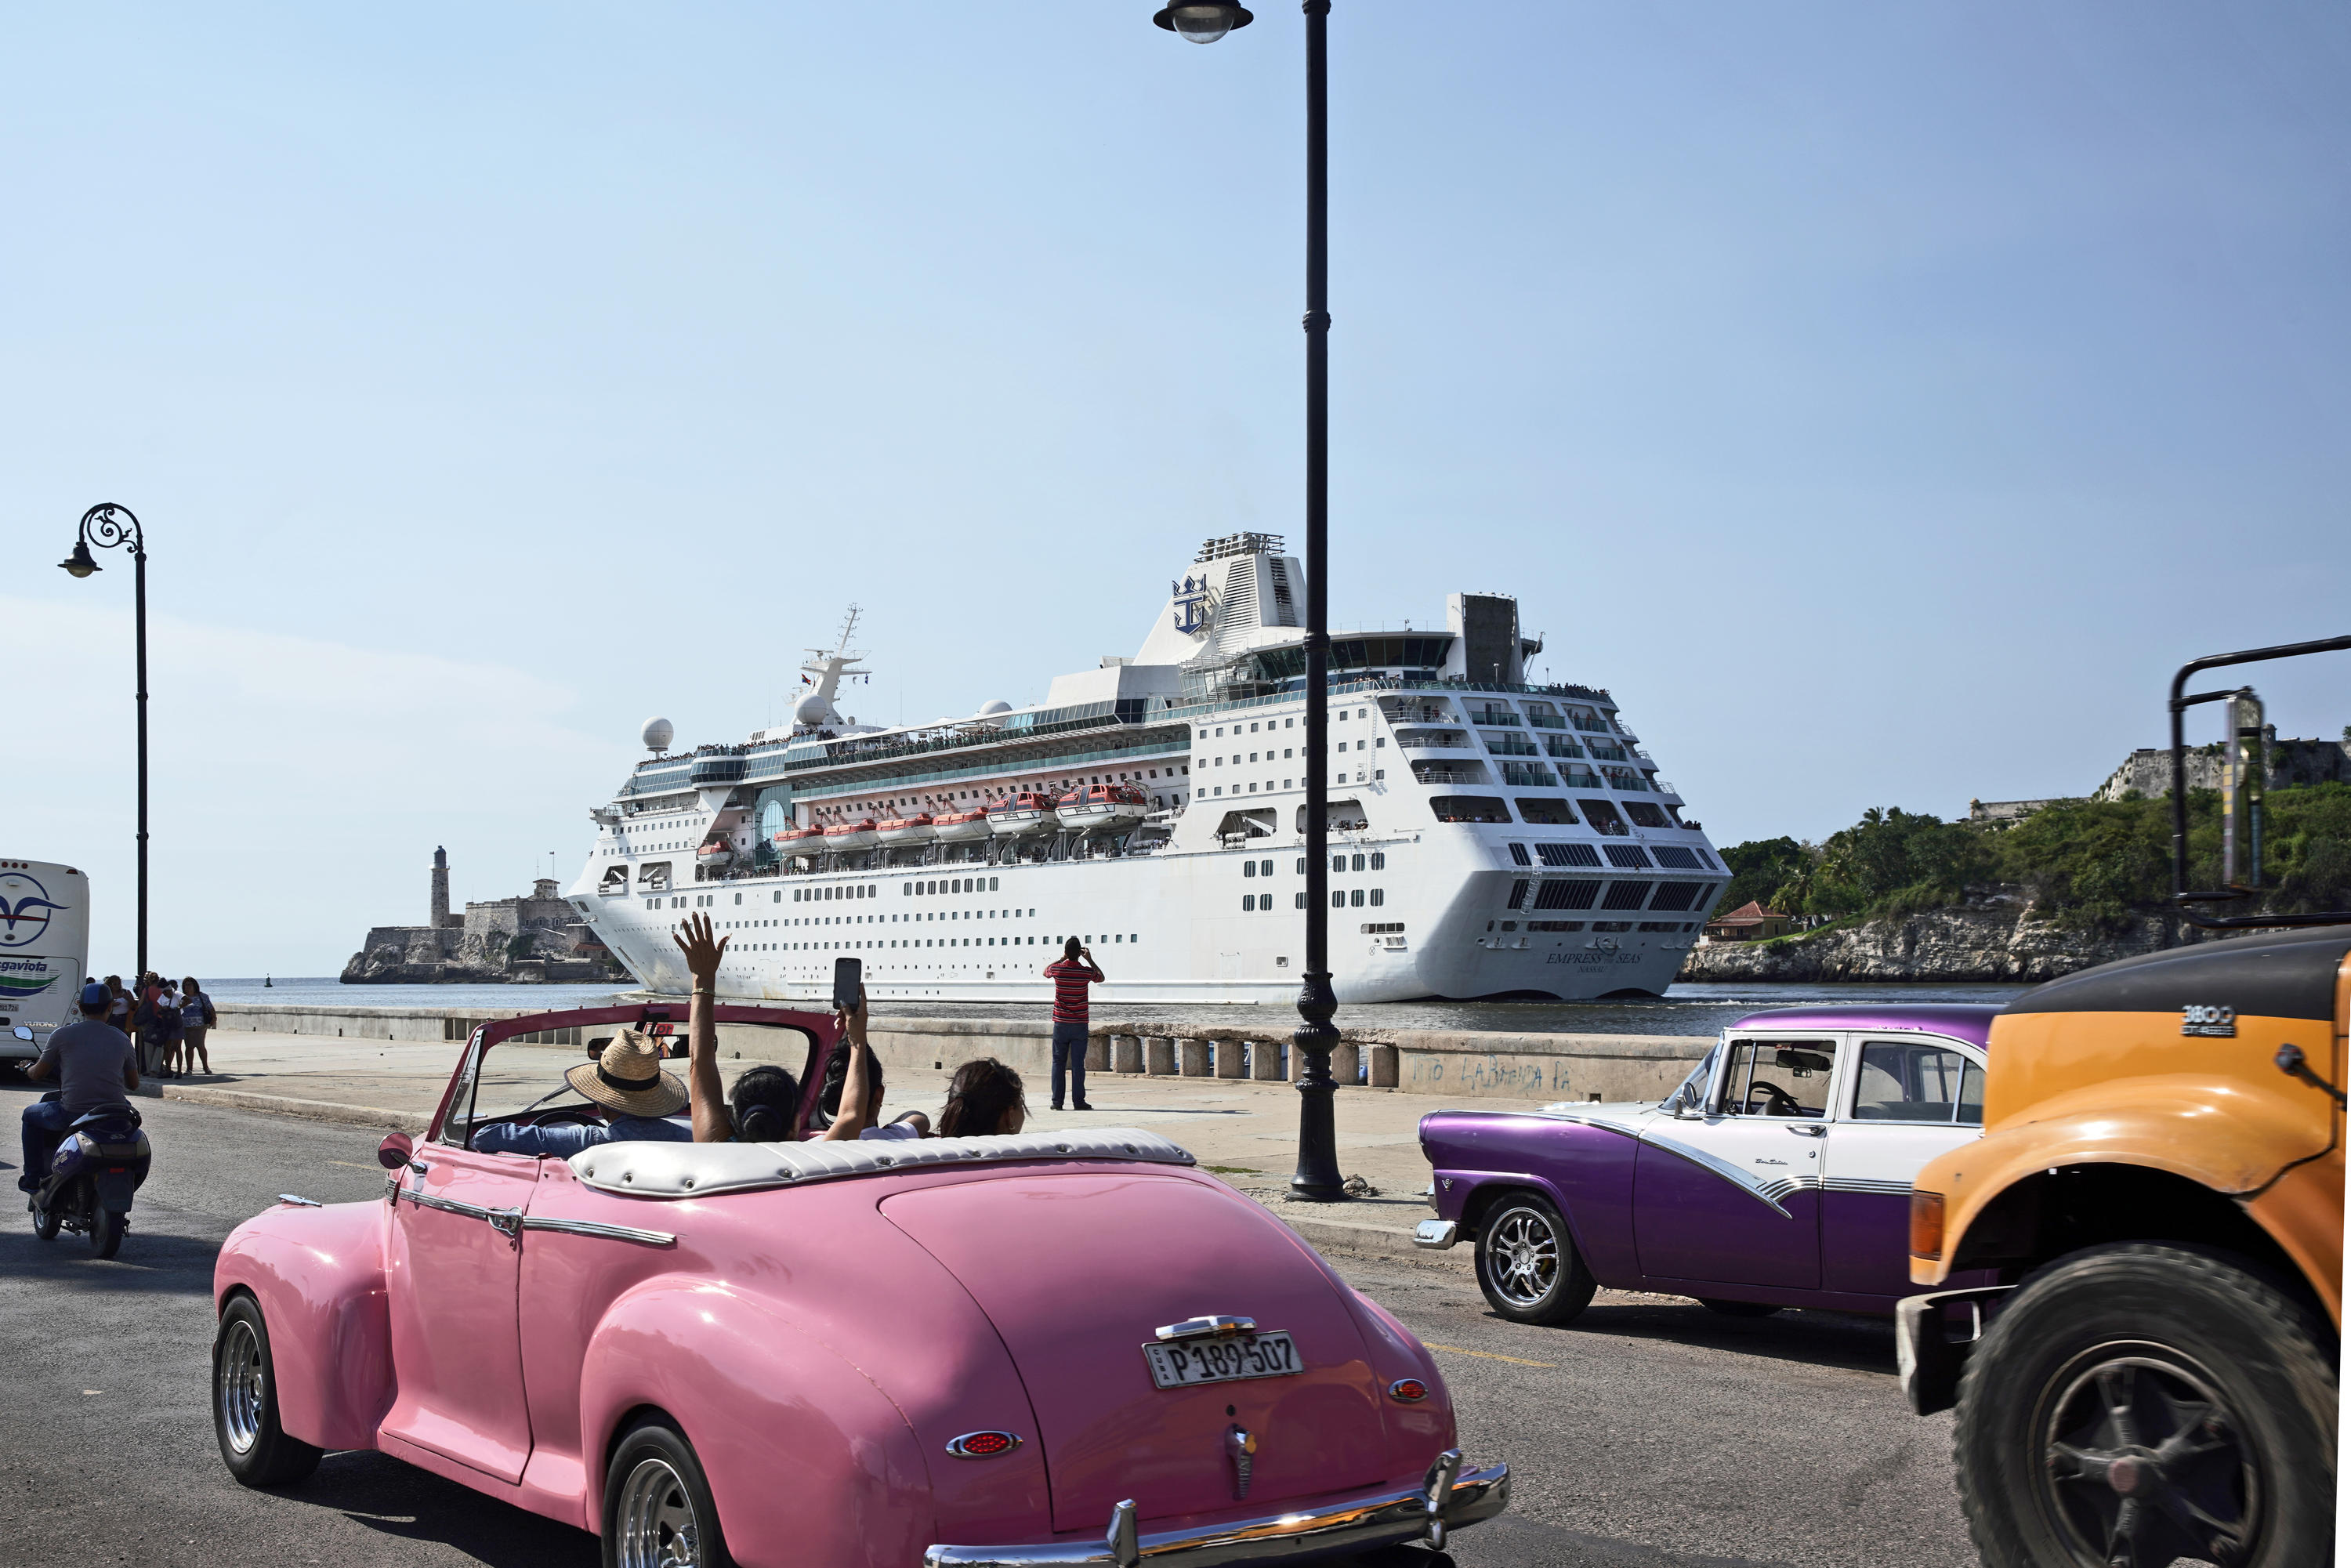 Last US cruise ship leaves Cuba as Trumps bans cruise ships from sailing to Cuba